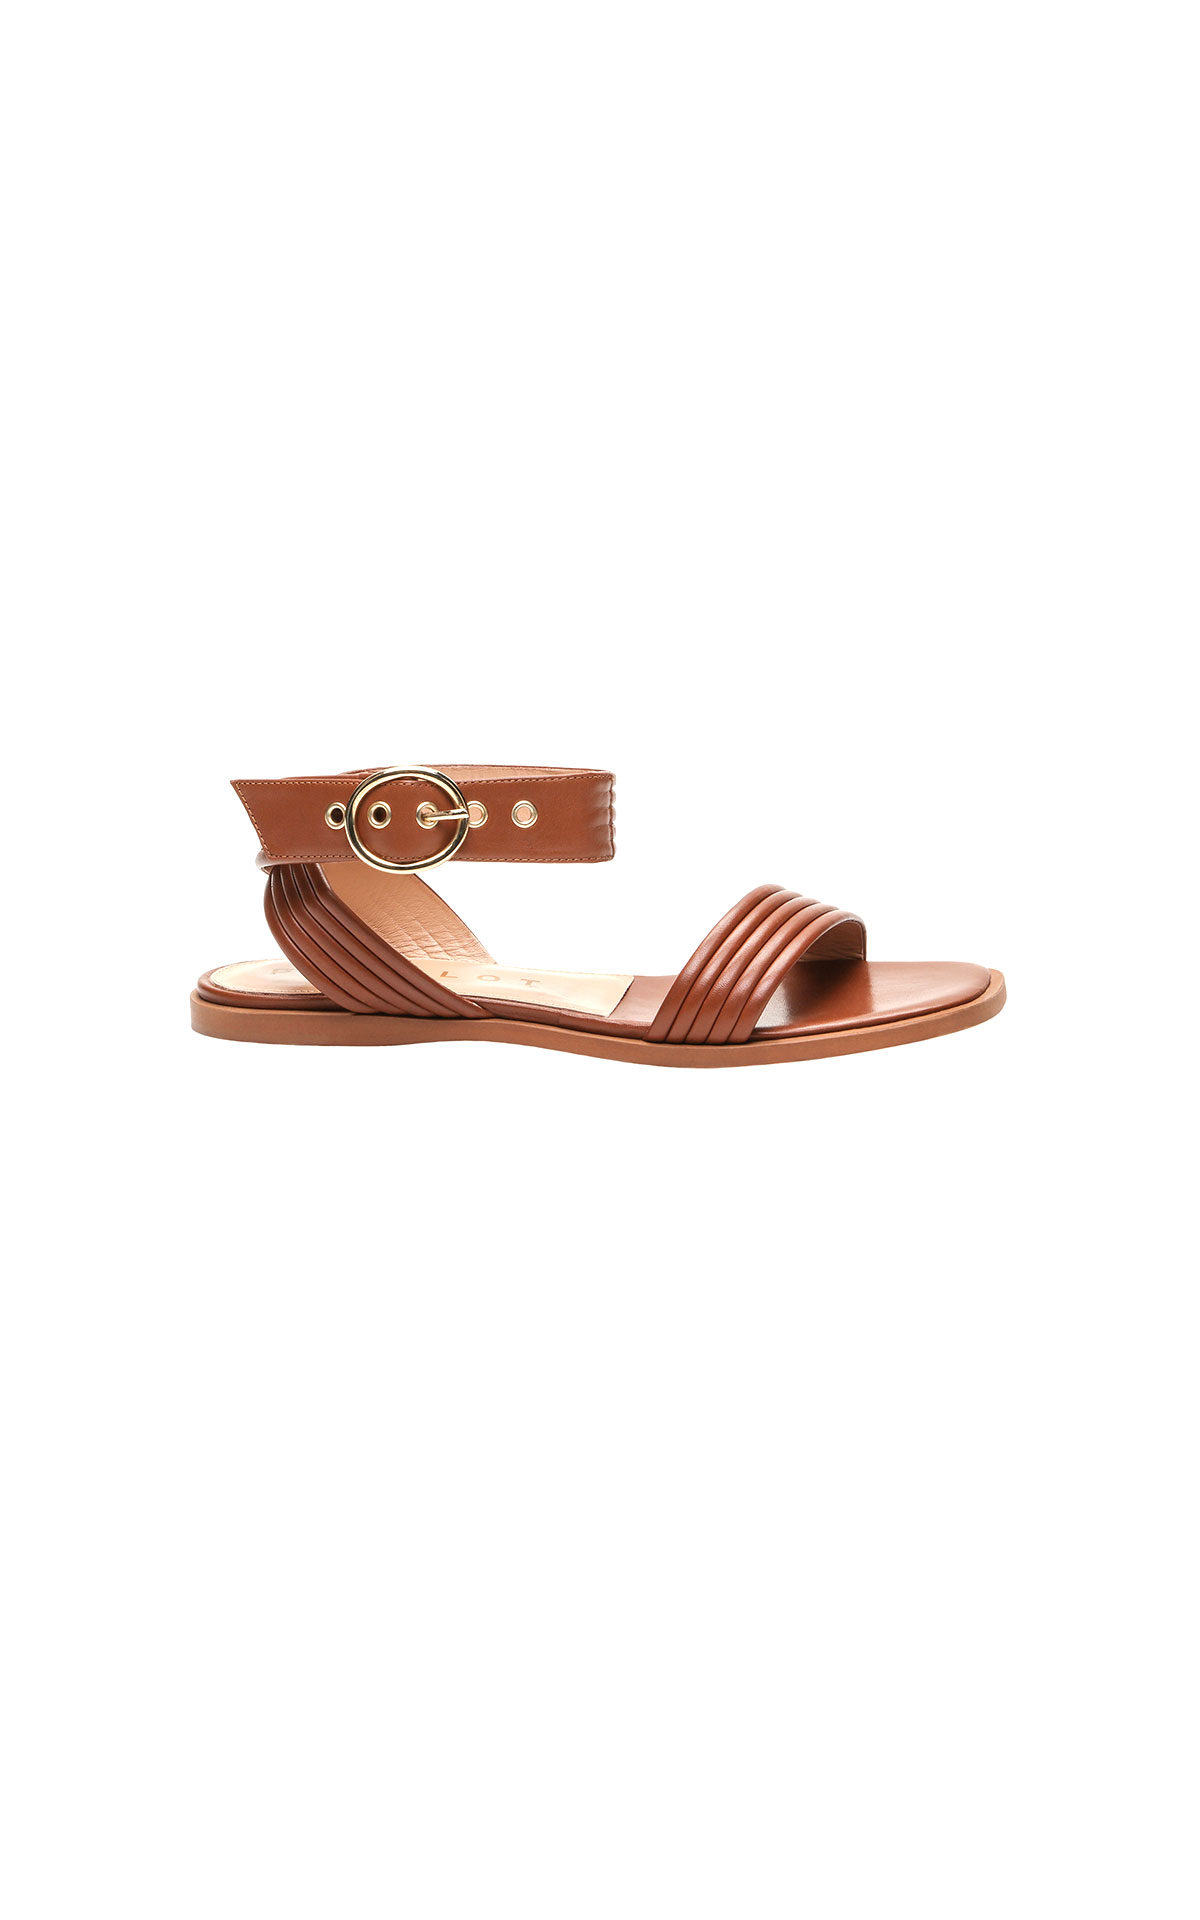 Claudie Pierlot Brown Sandal at The Bicester Village Shopping Collection